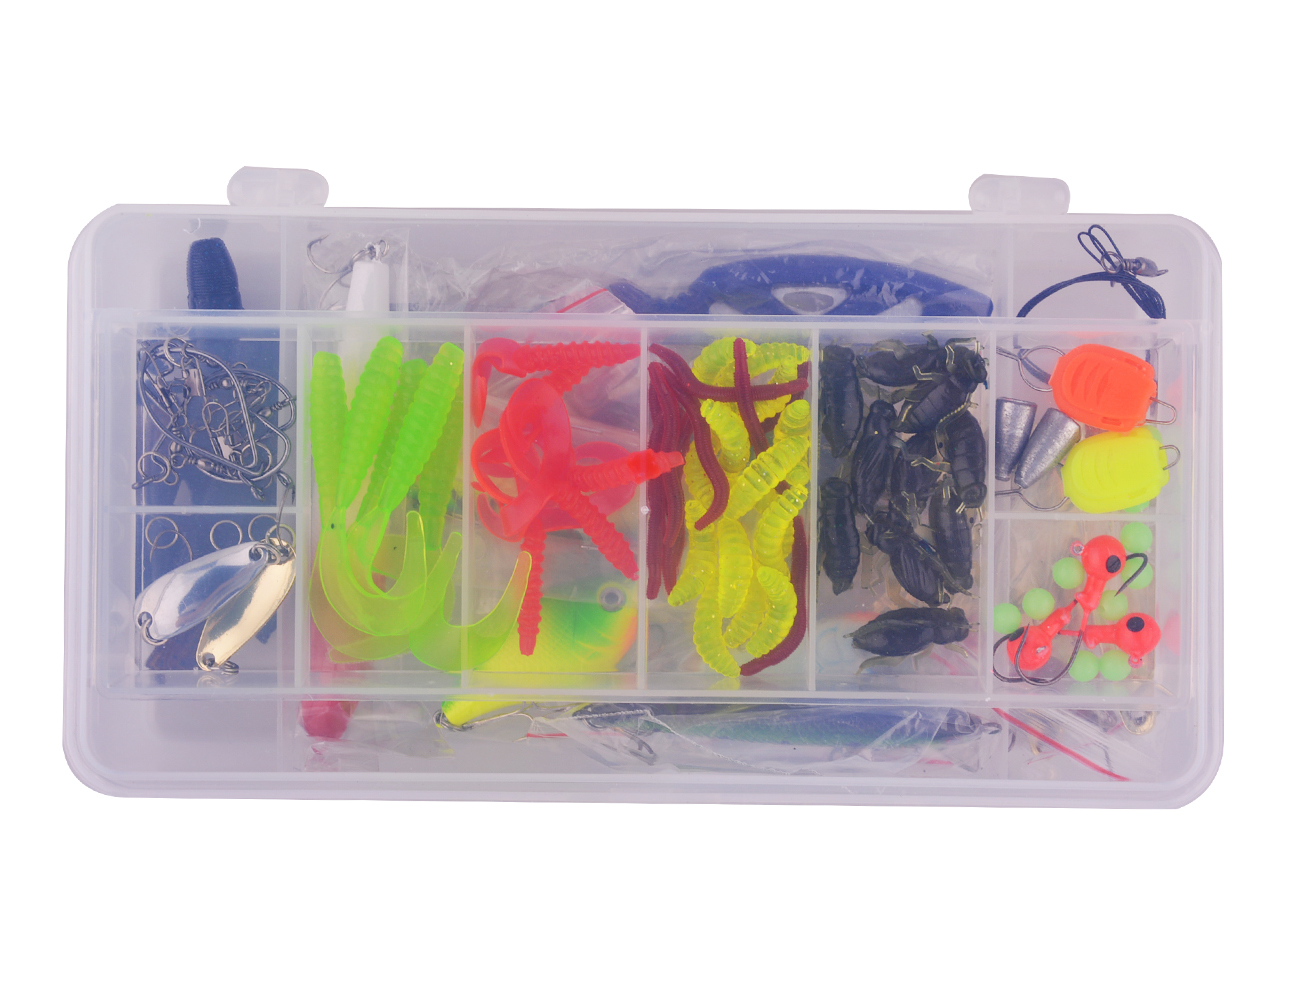 Fishing Lure Set Kit Soft and Hard Lure Baits Tackle Set Freshwater Trout Bass Salmon 101pcs by